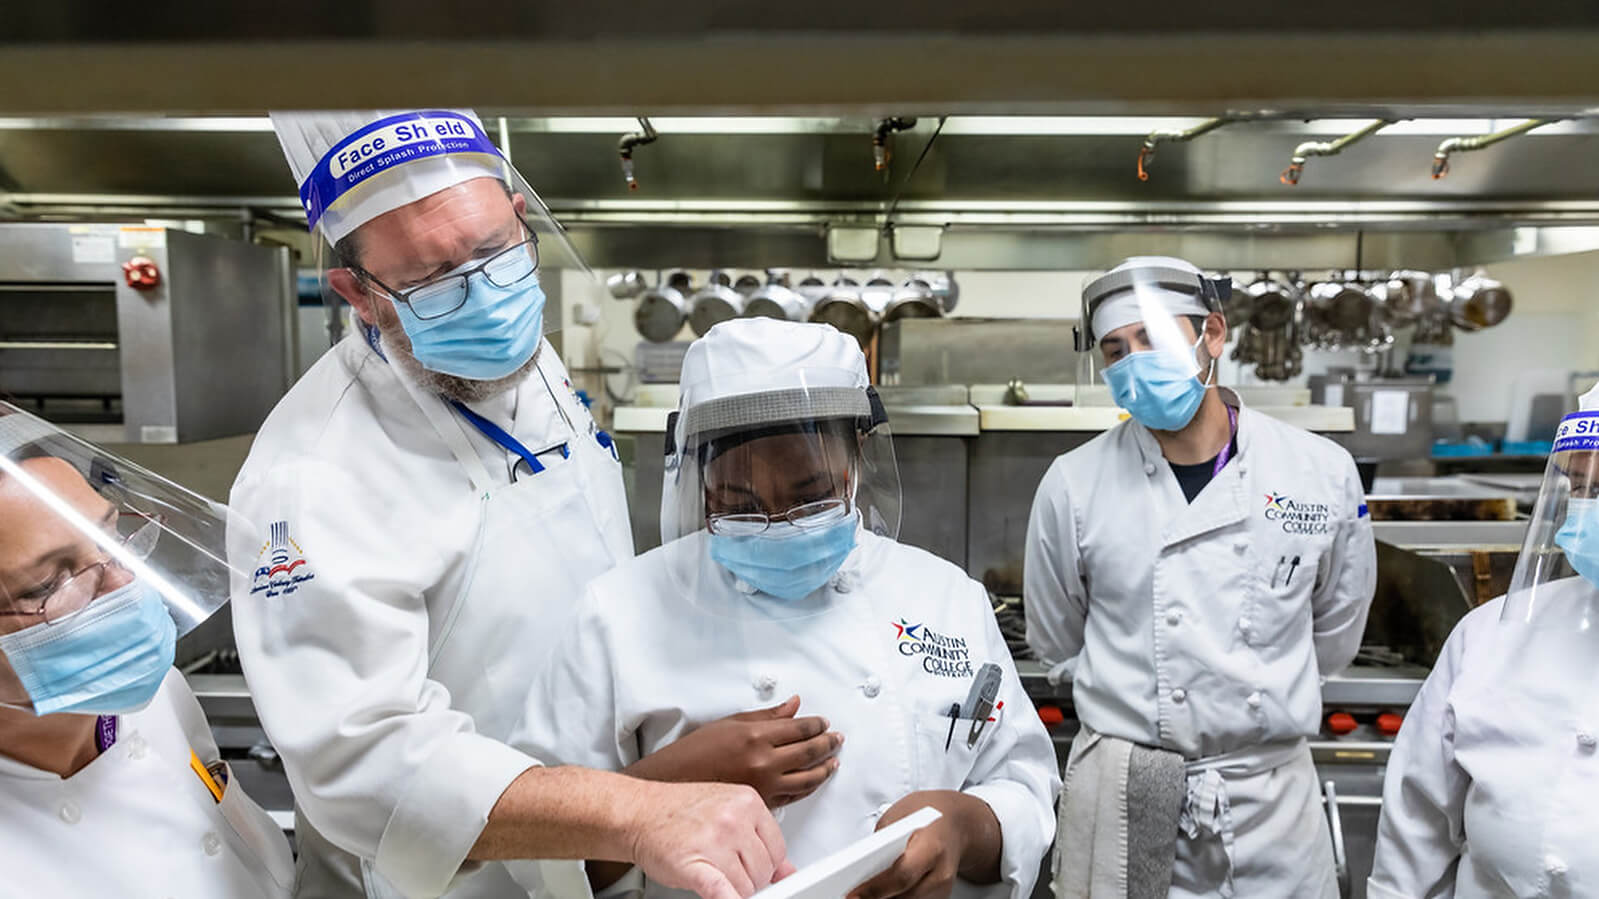 David Waggoner instructs students, Cathy Clayton, Alicia Jones, Robert Wilson, and Grace Aguilar, during a culinary class.